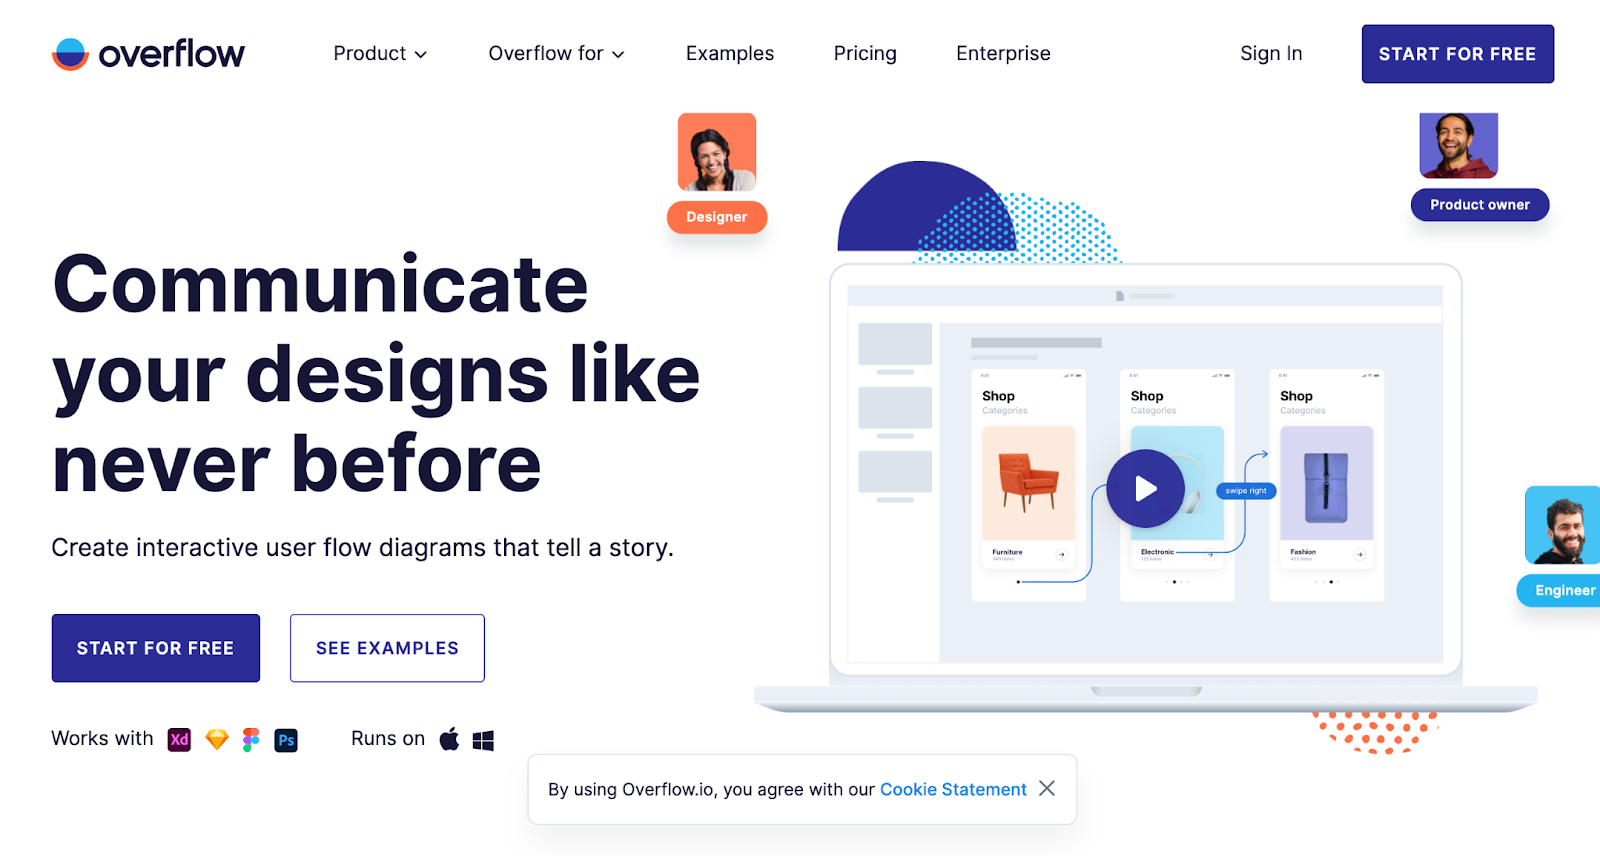 overflow best website design award winner 2018